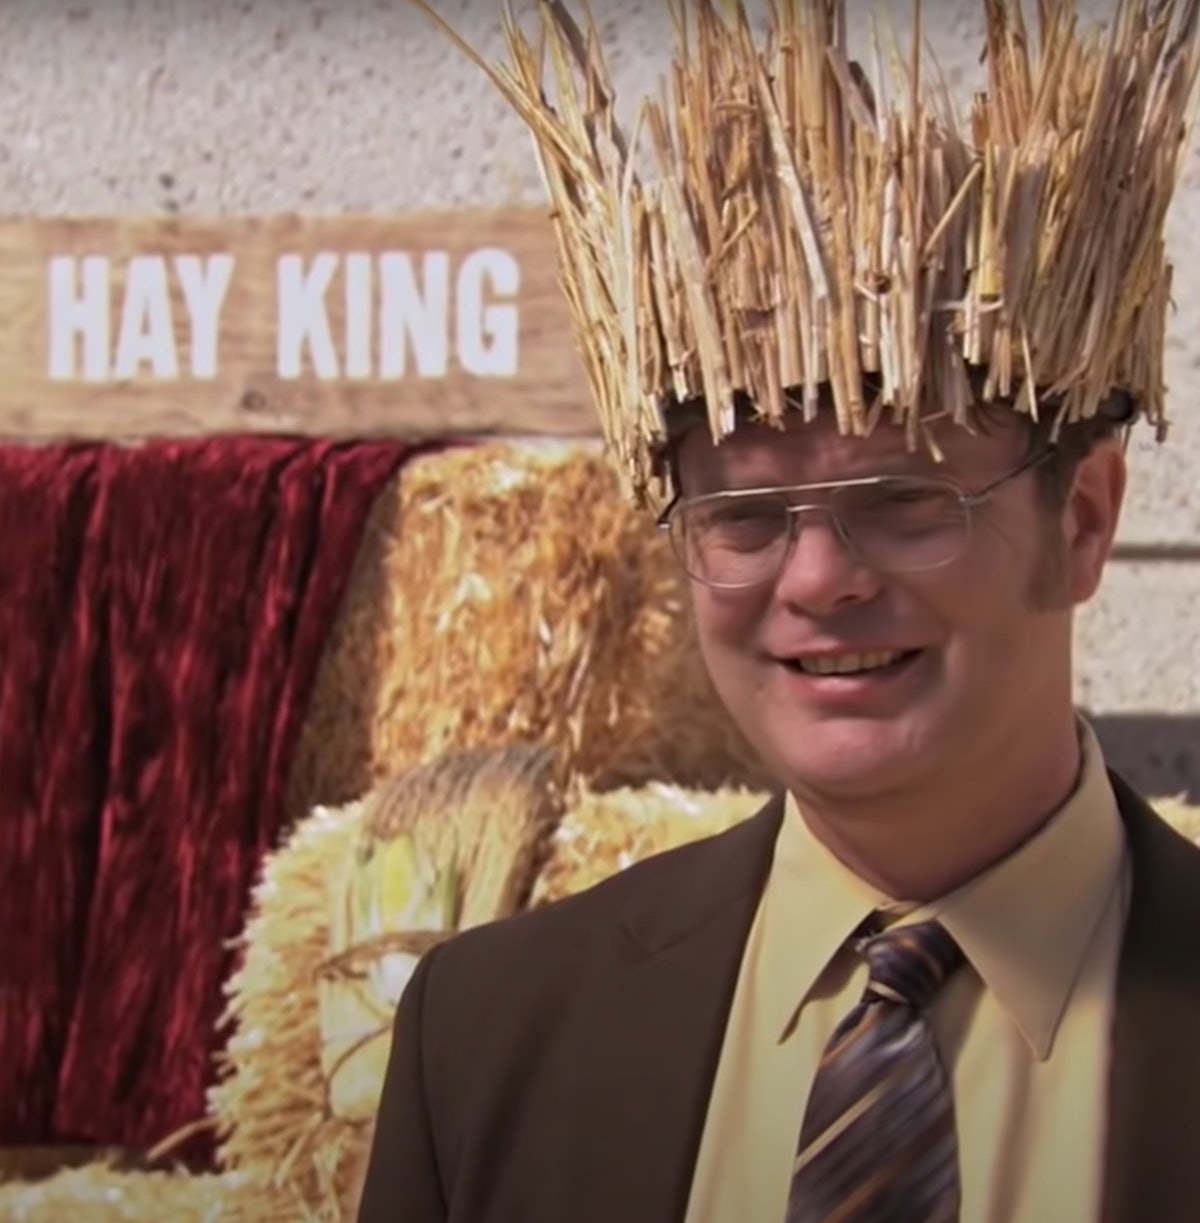 Plan a date this Thanksgiving inspired by Dwight's Hay King festival.